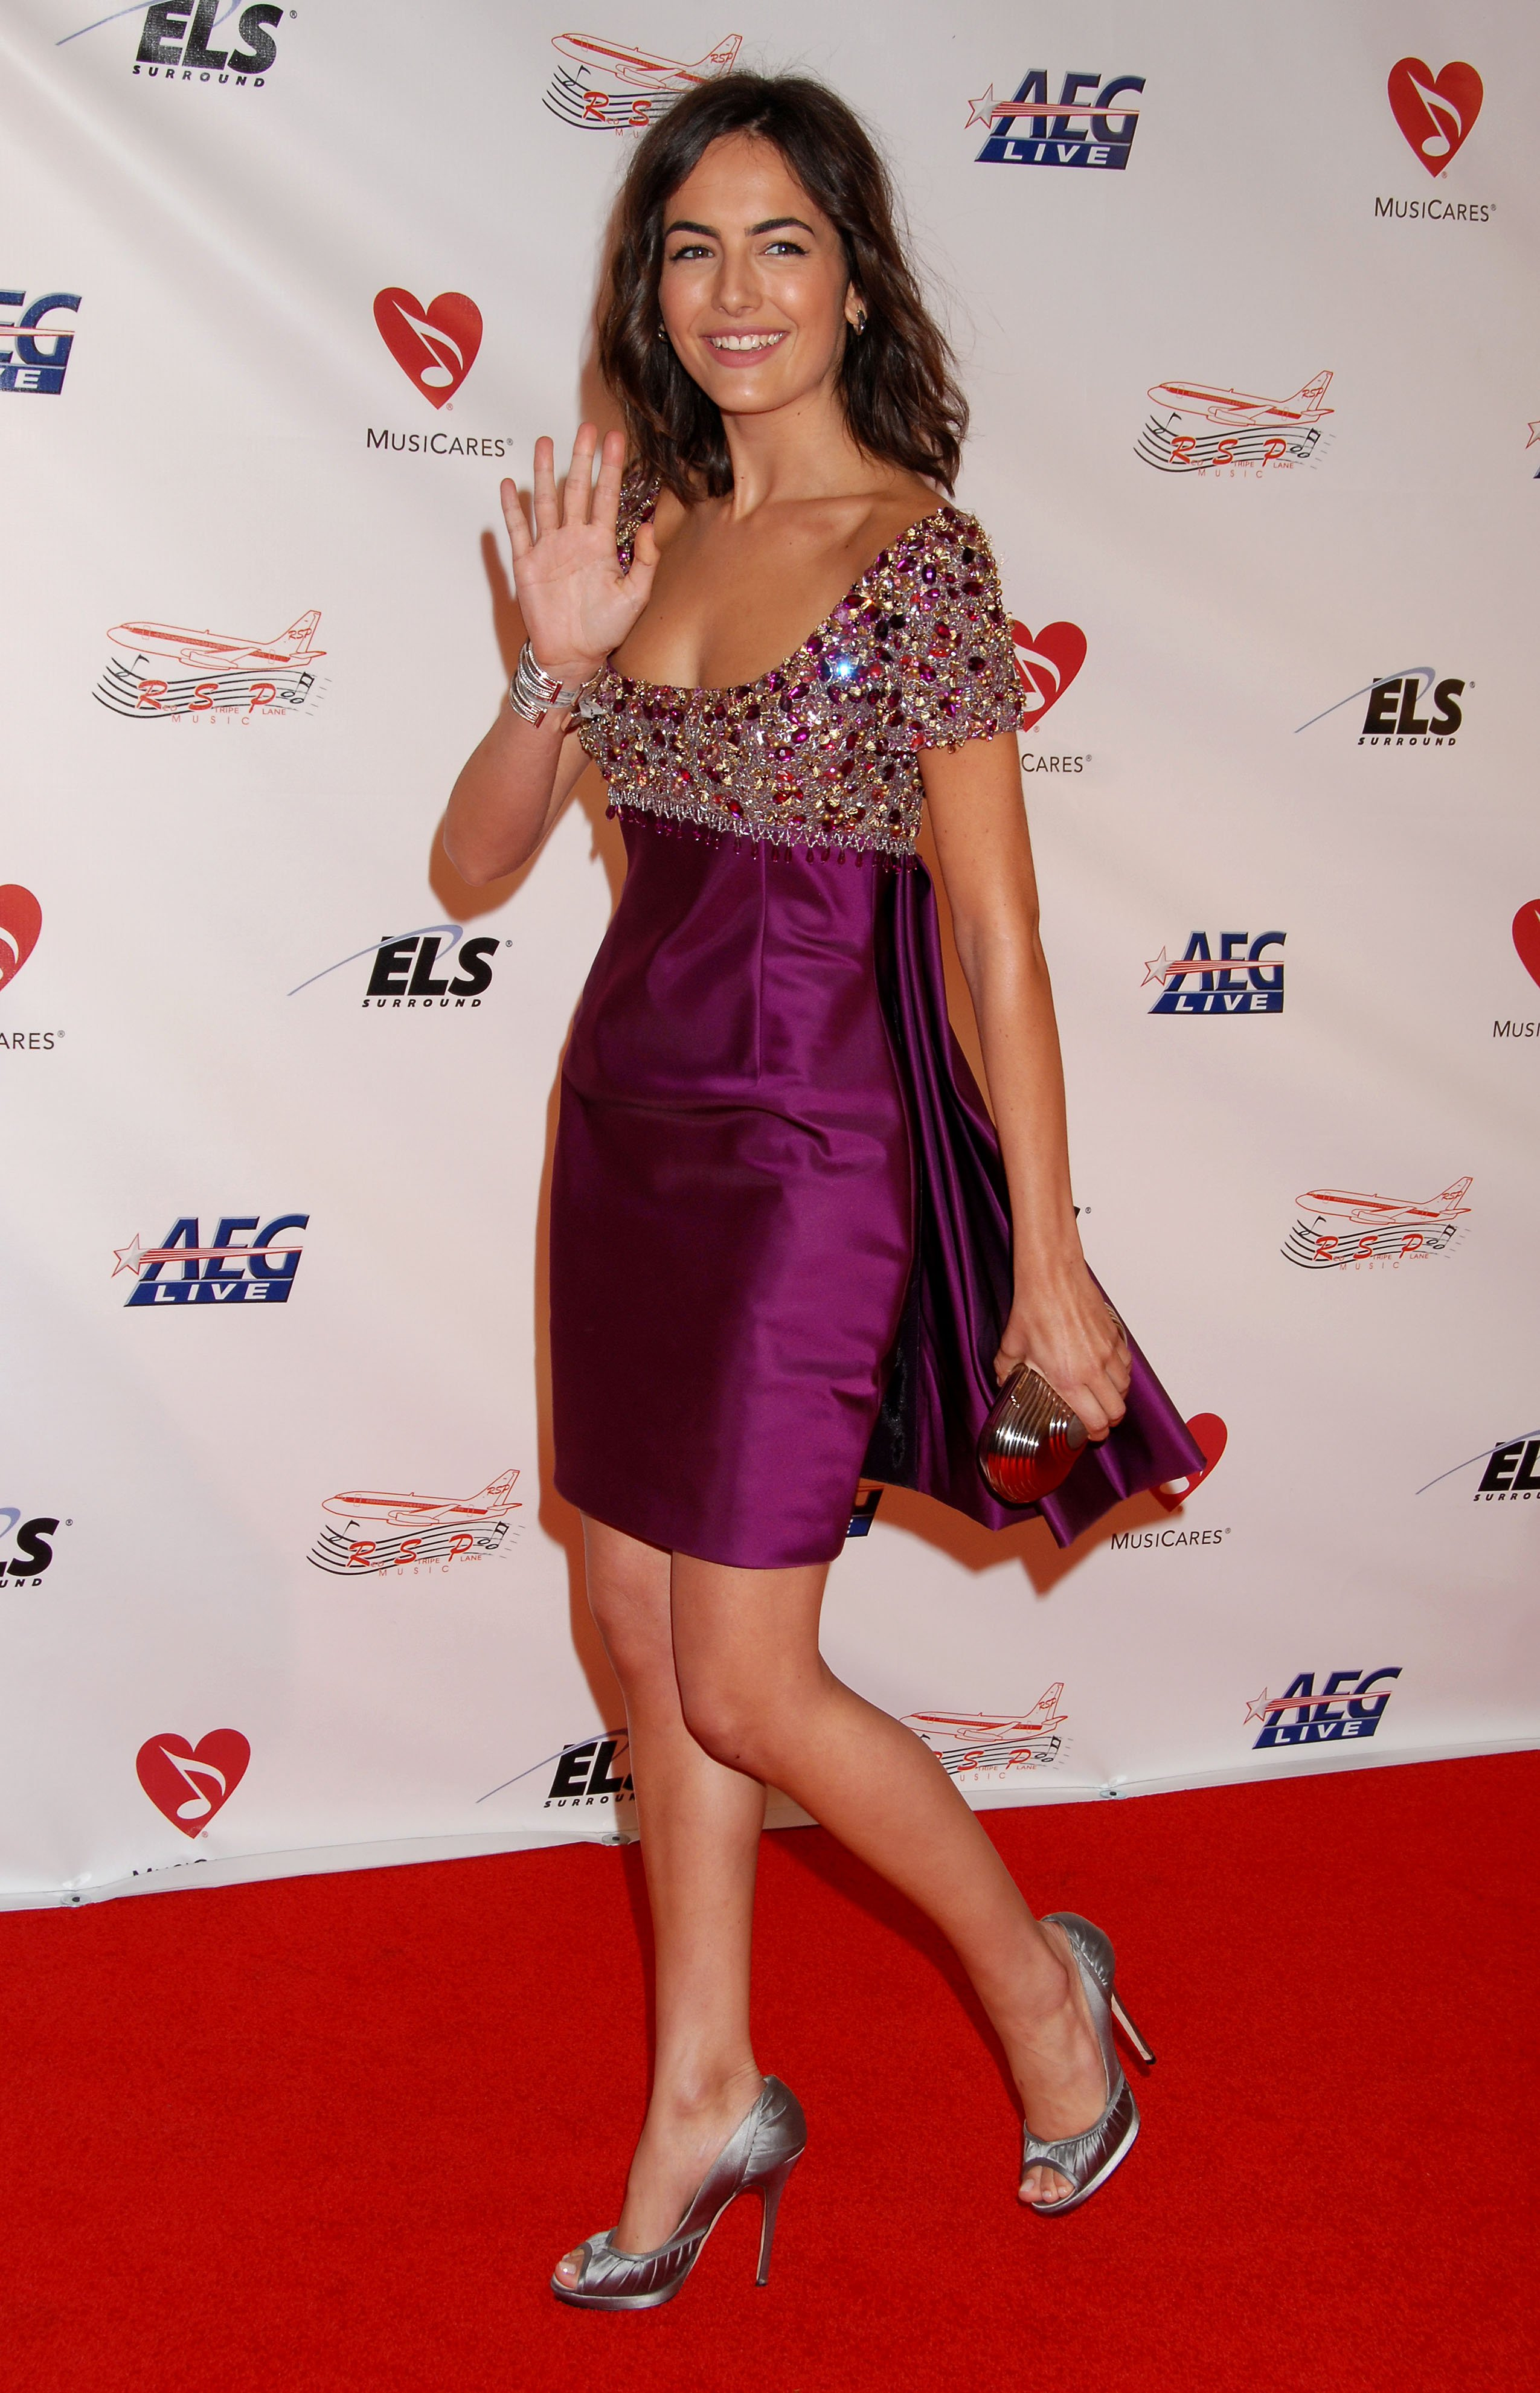 07636_Celebutopia-Camilla_Belle_arrives_at_the_2009_MusiCares_Person_Of_The_Year_Gala-19_122_1013lo.JPG